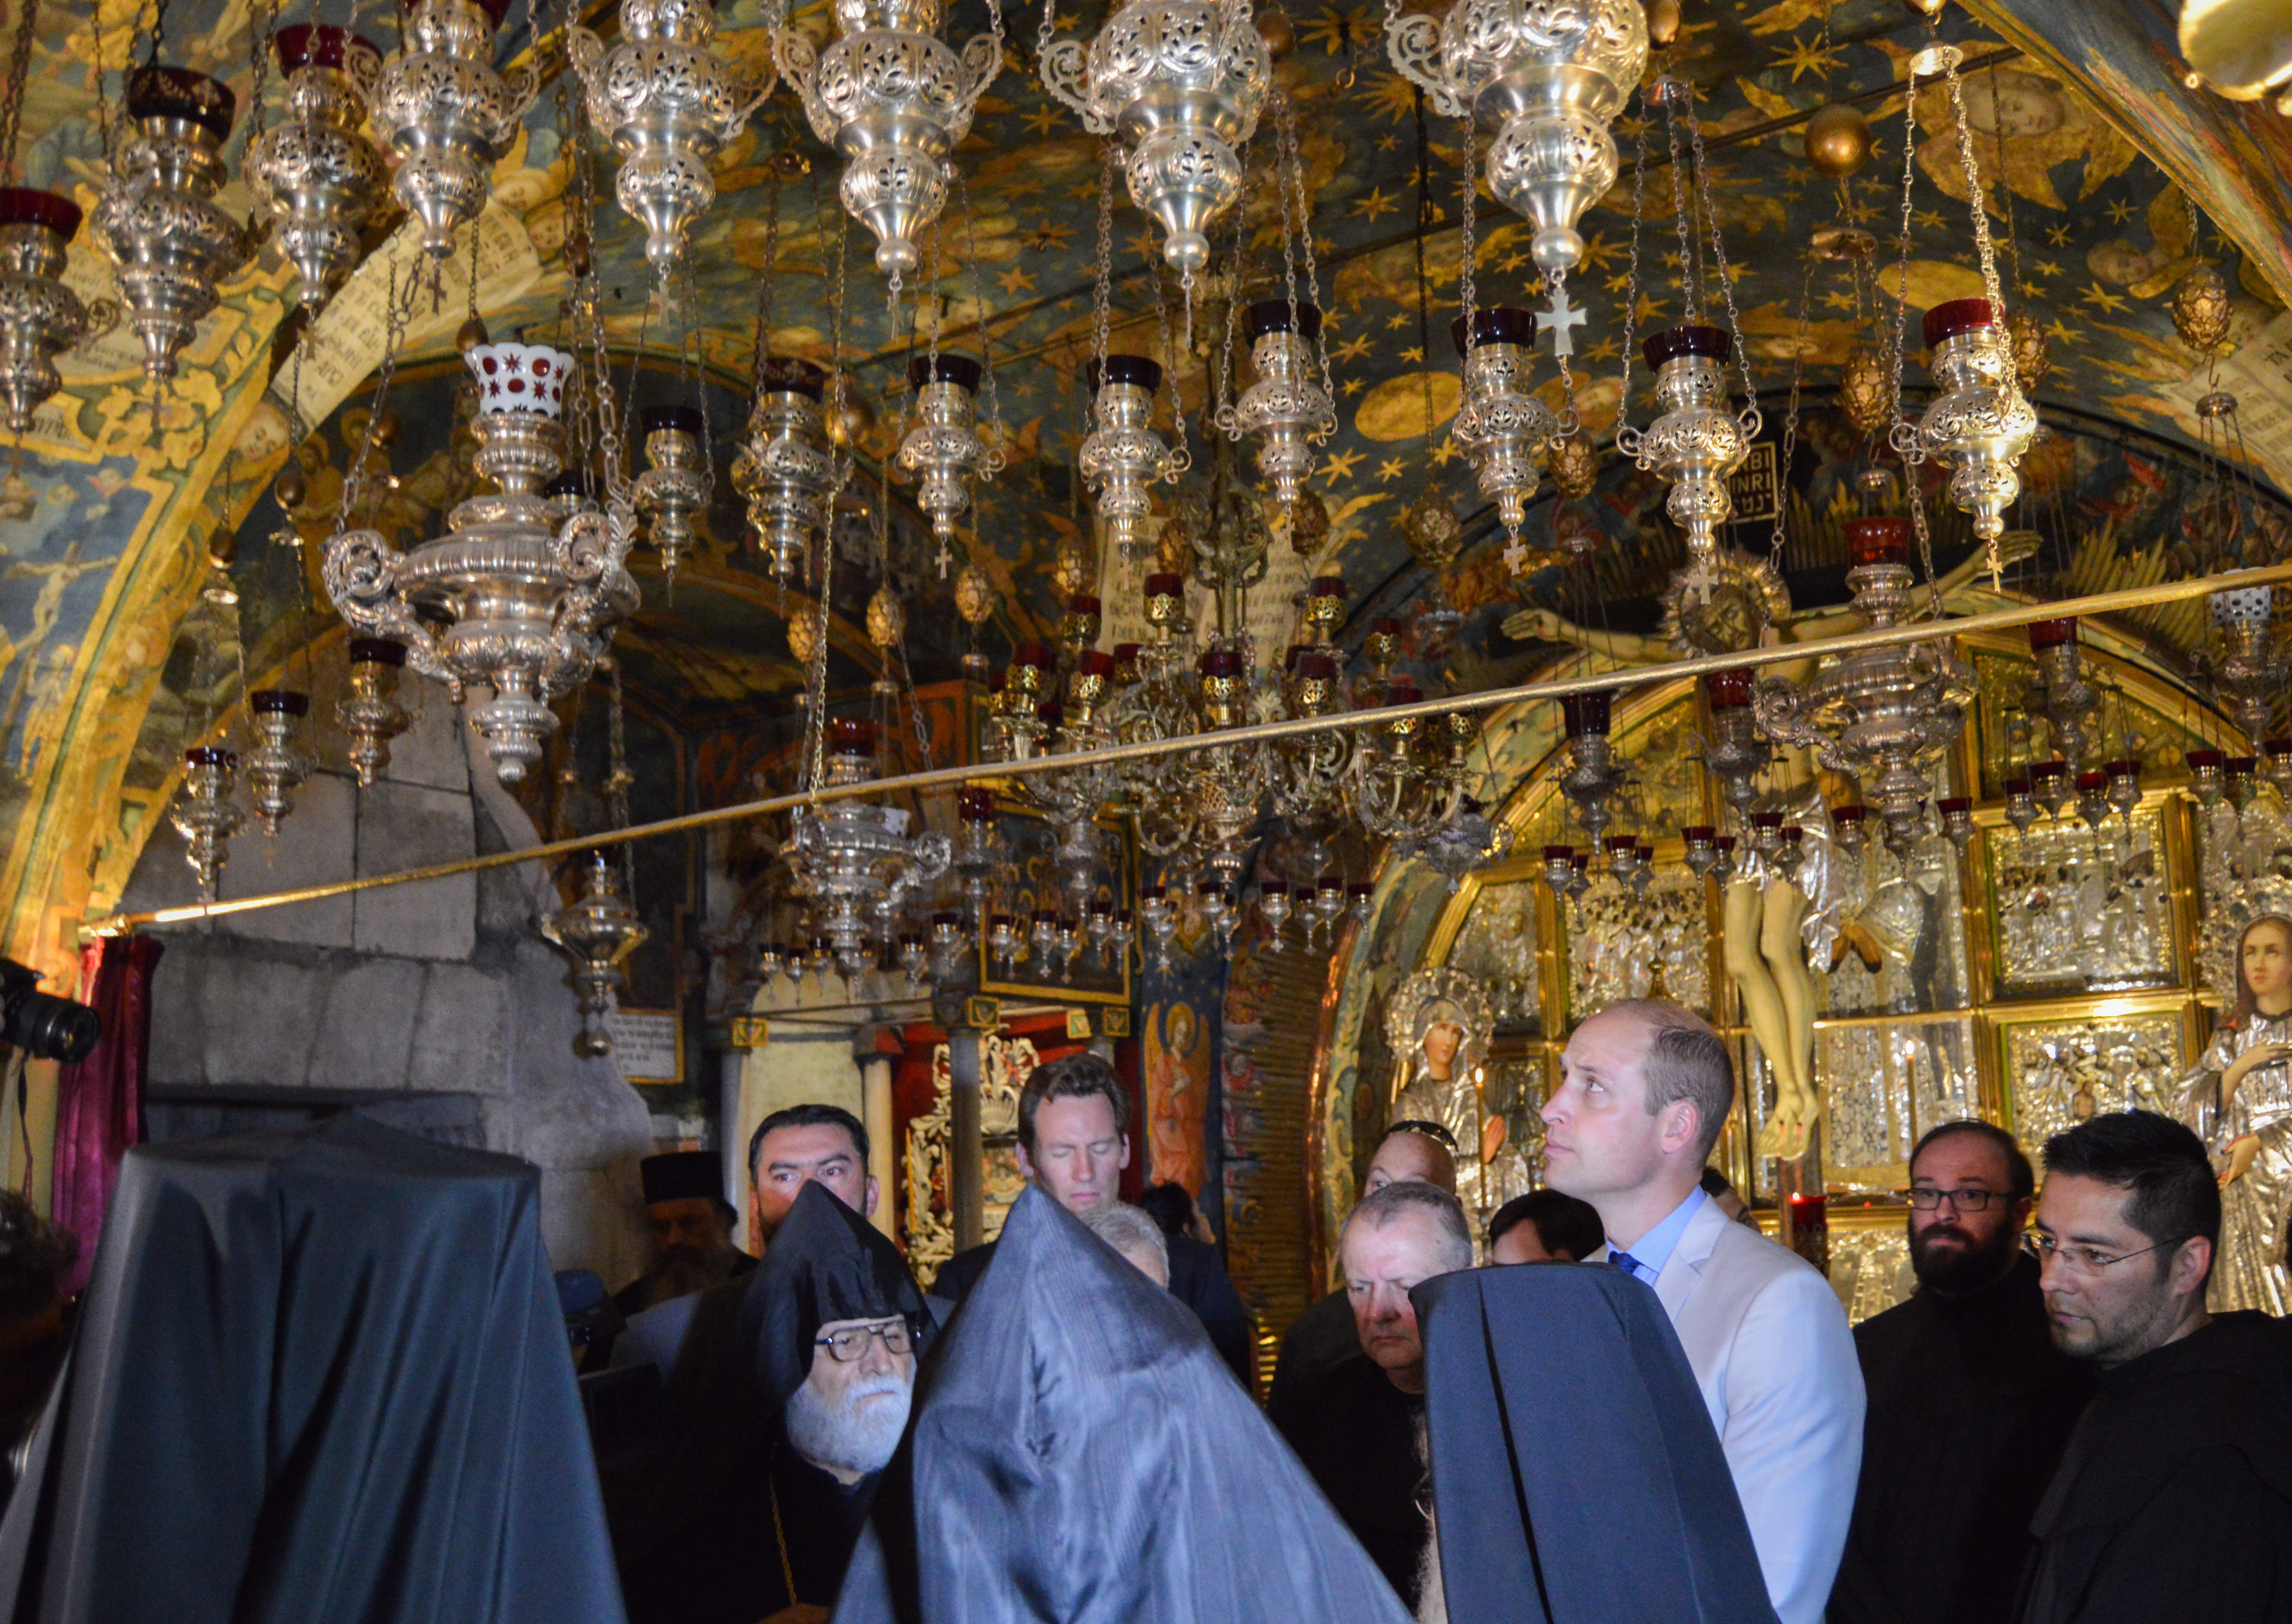 Prince William tours the Church of the Holy Sepulcher in Jerusalem's old City